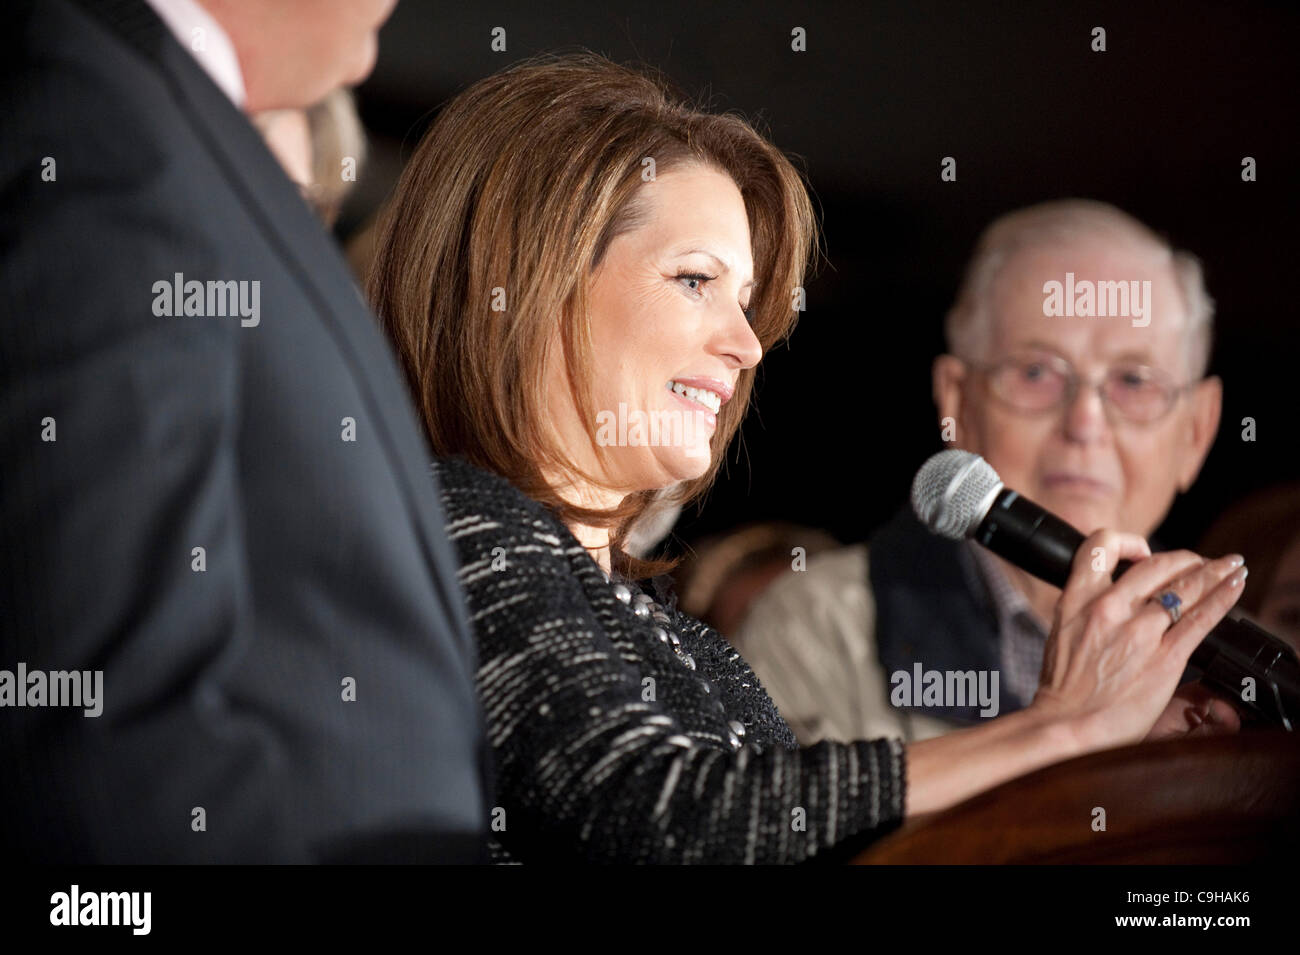 Republican presidential candidate Michele Bachmann announces the end of her campaign after a poor showing in the - Stock Image